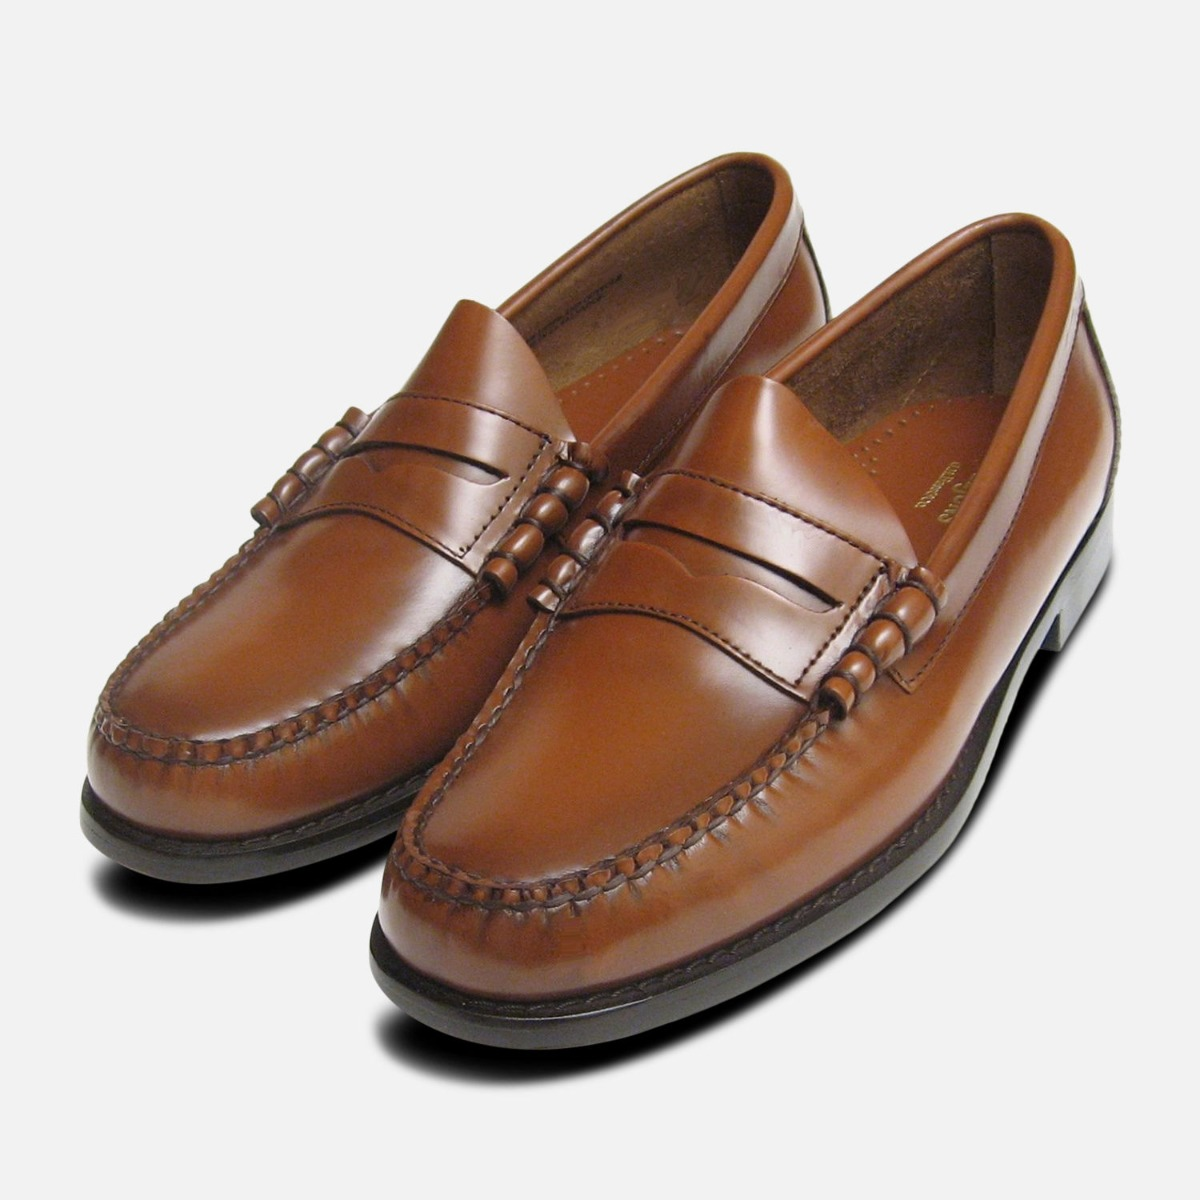 Details zu Classic Mens Honey Brown Larson Penny Loafers GH Bass Weejuns